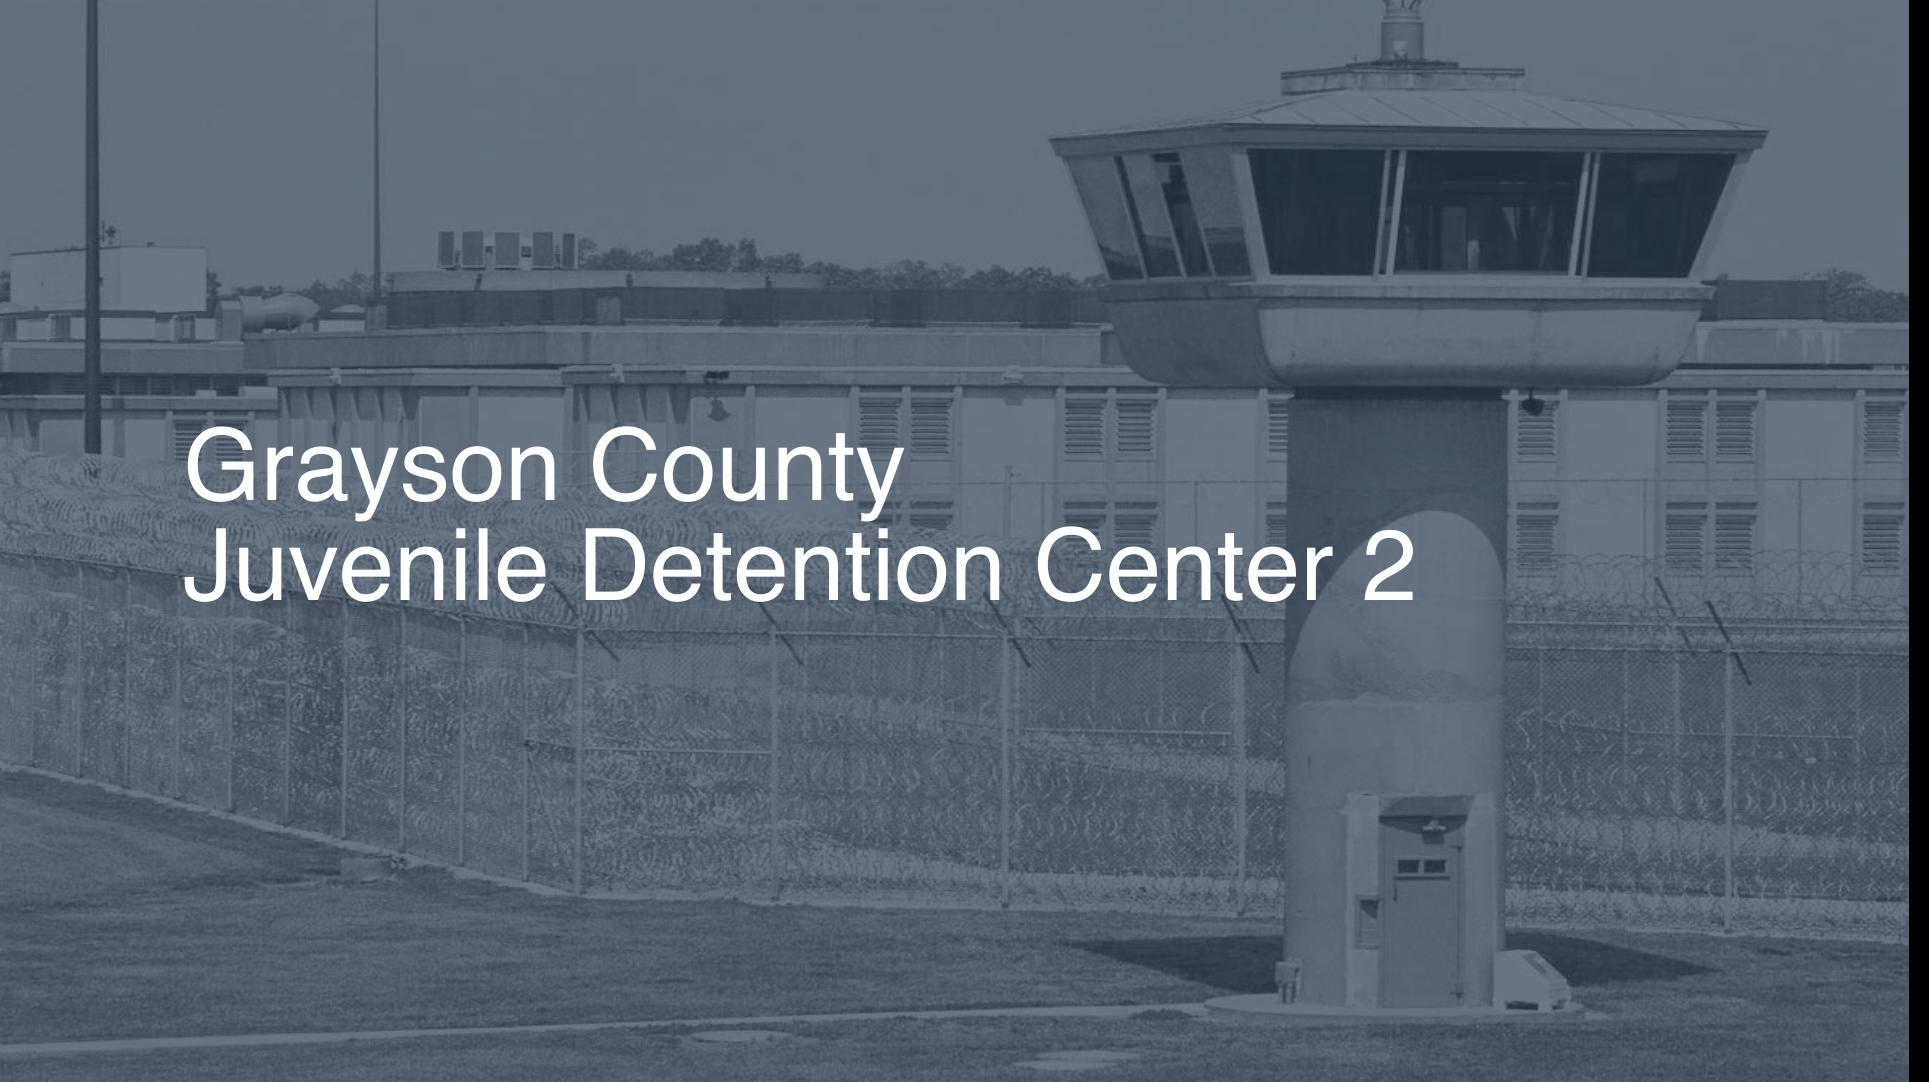 Grayson County Juvenile Detention Center correctional facility picture